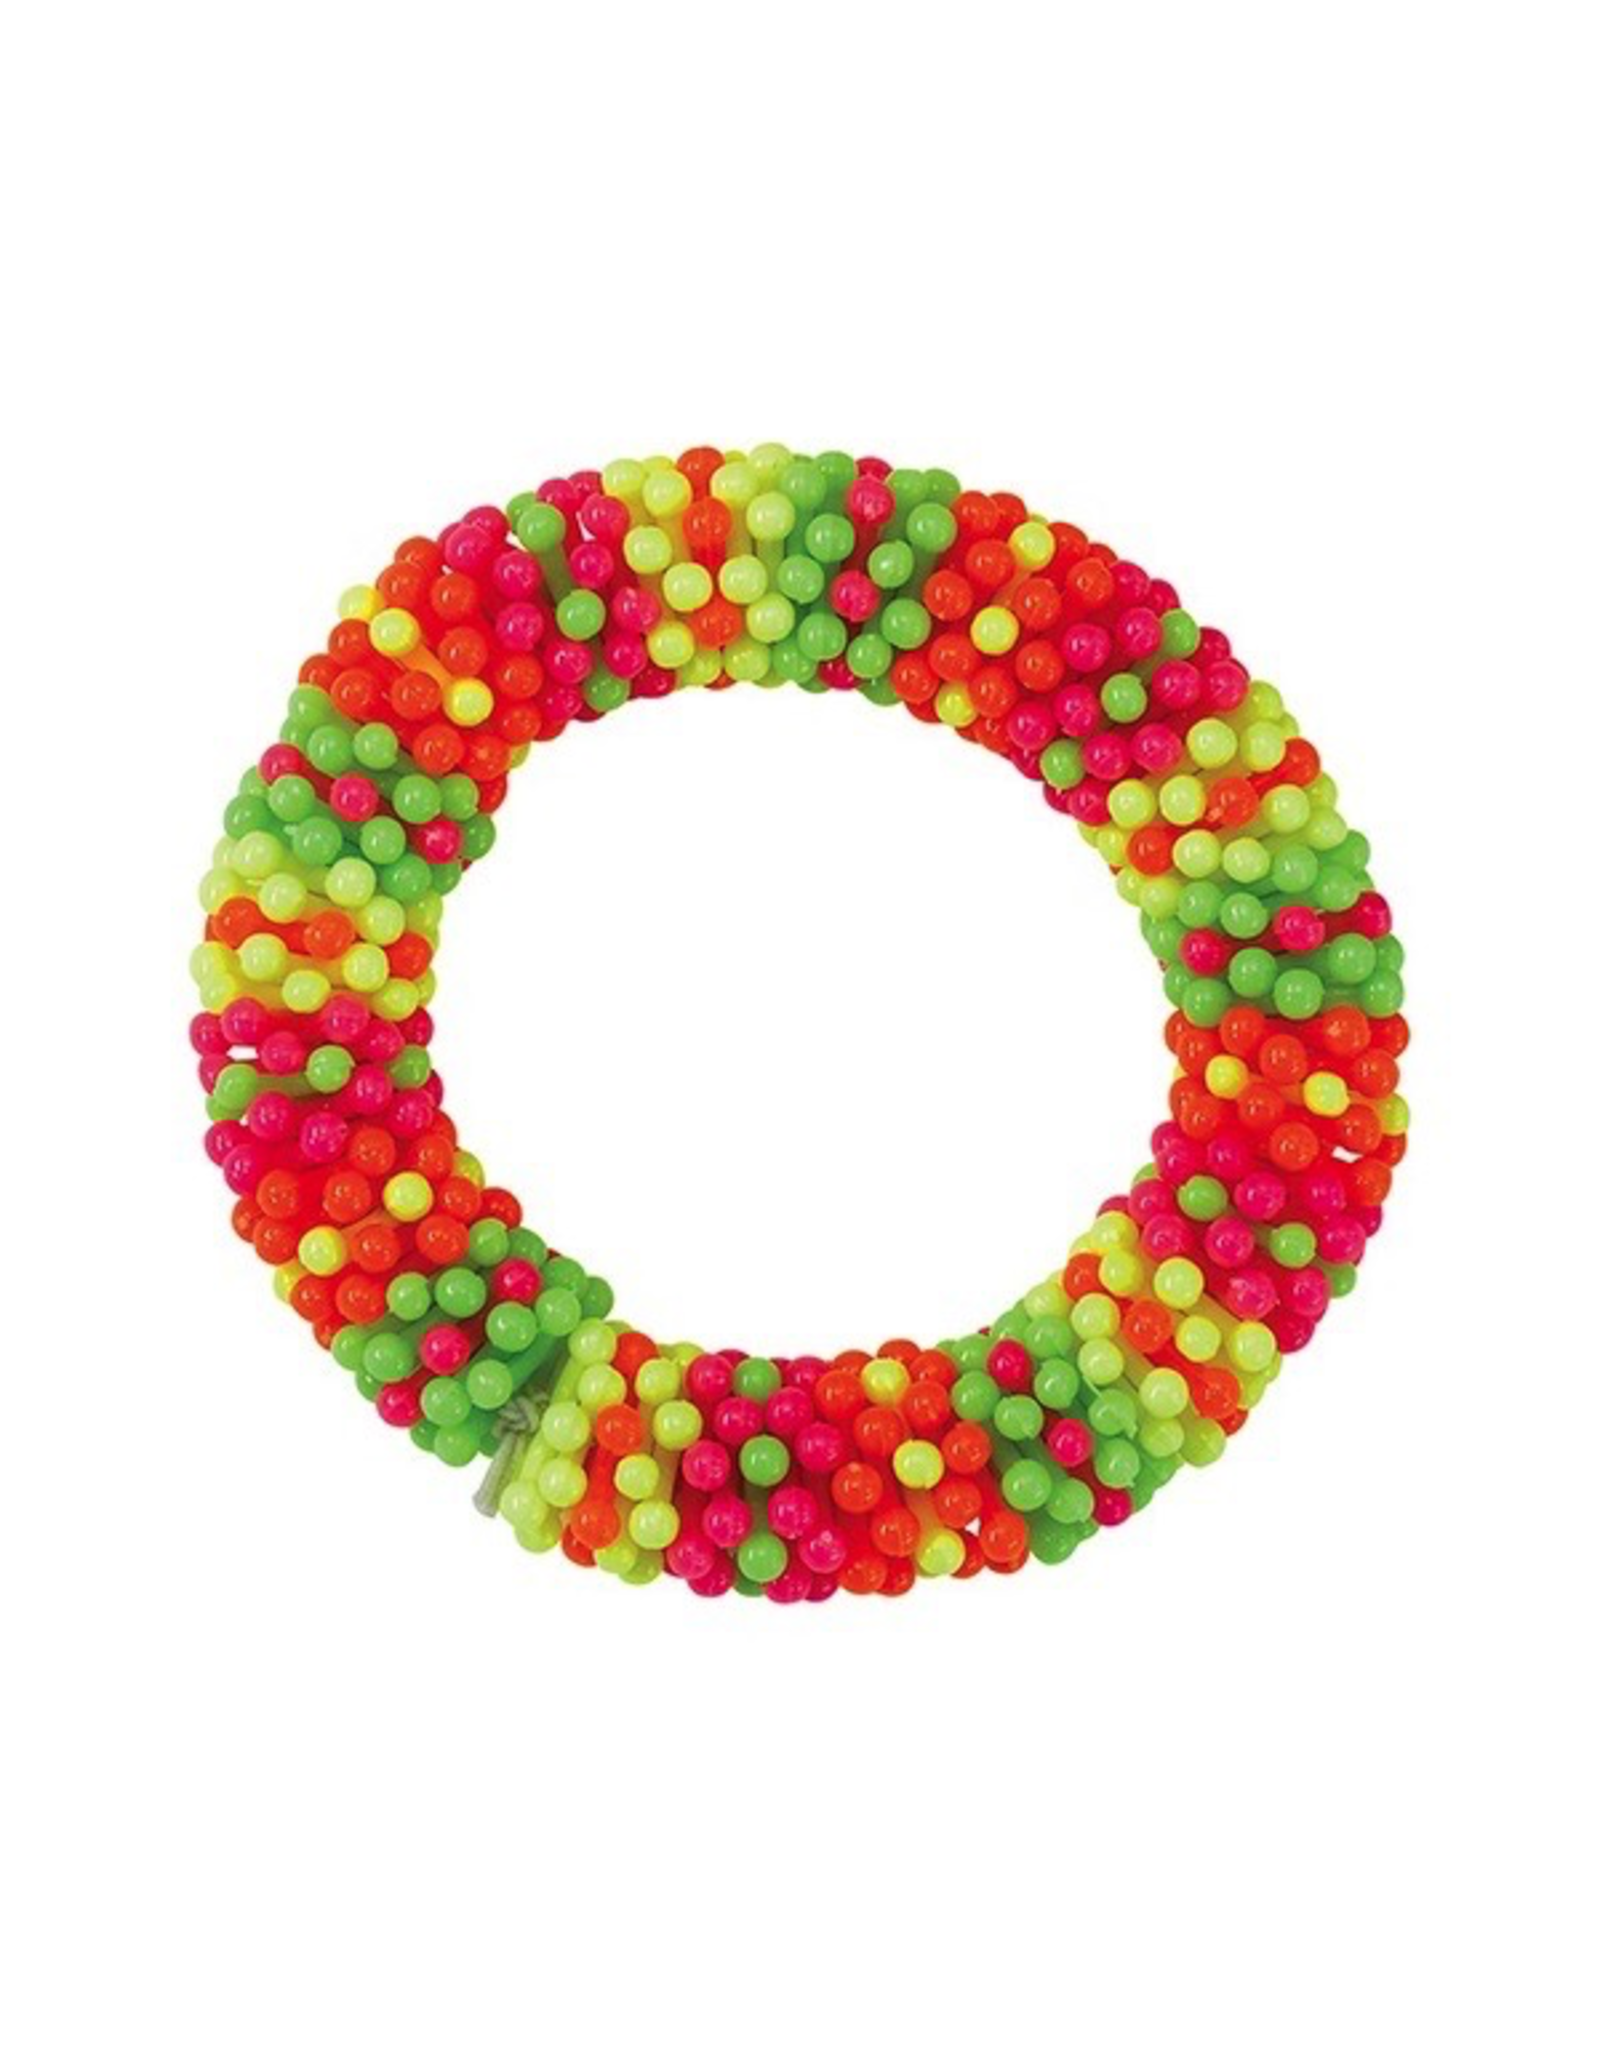 Creativity for Kids Bright Bead Bracelets Mini Kit